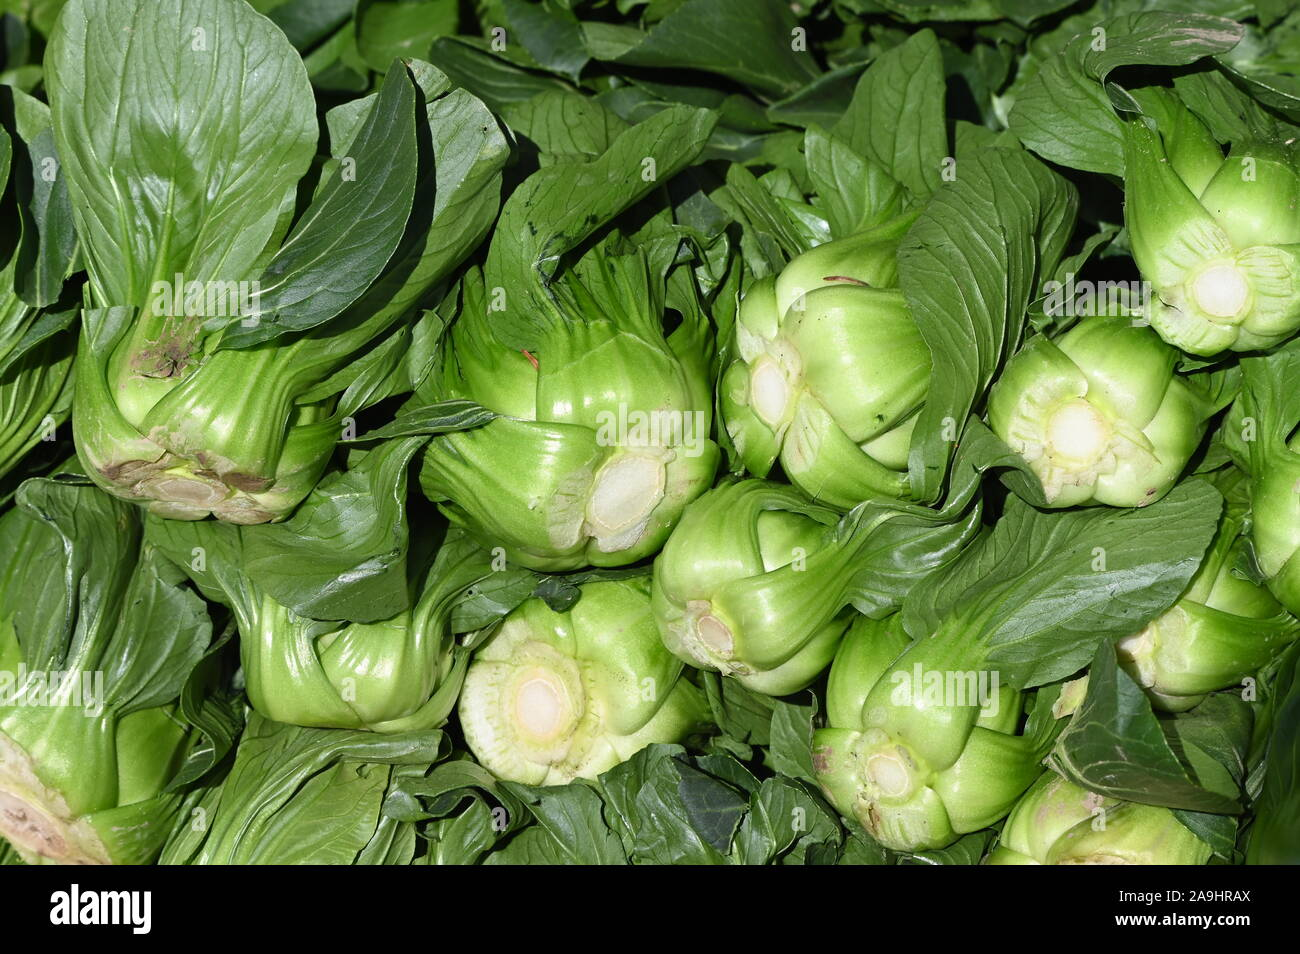 brassica rapa chinensis, Pak Choi, a delicious Chinese cabbage Stock Photo